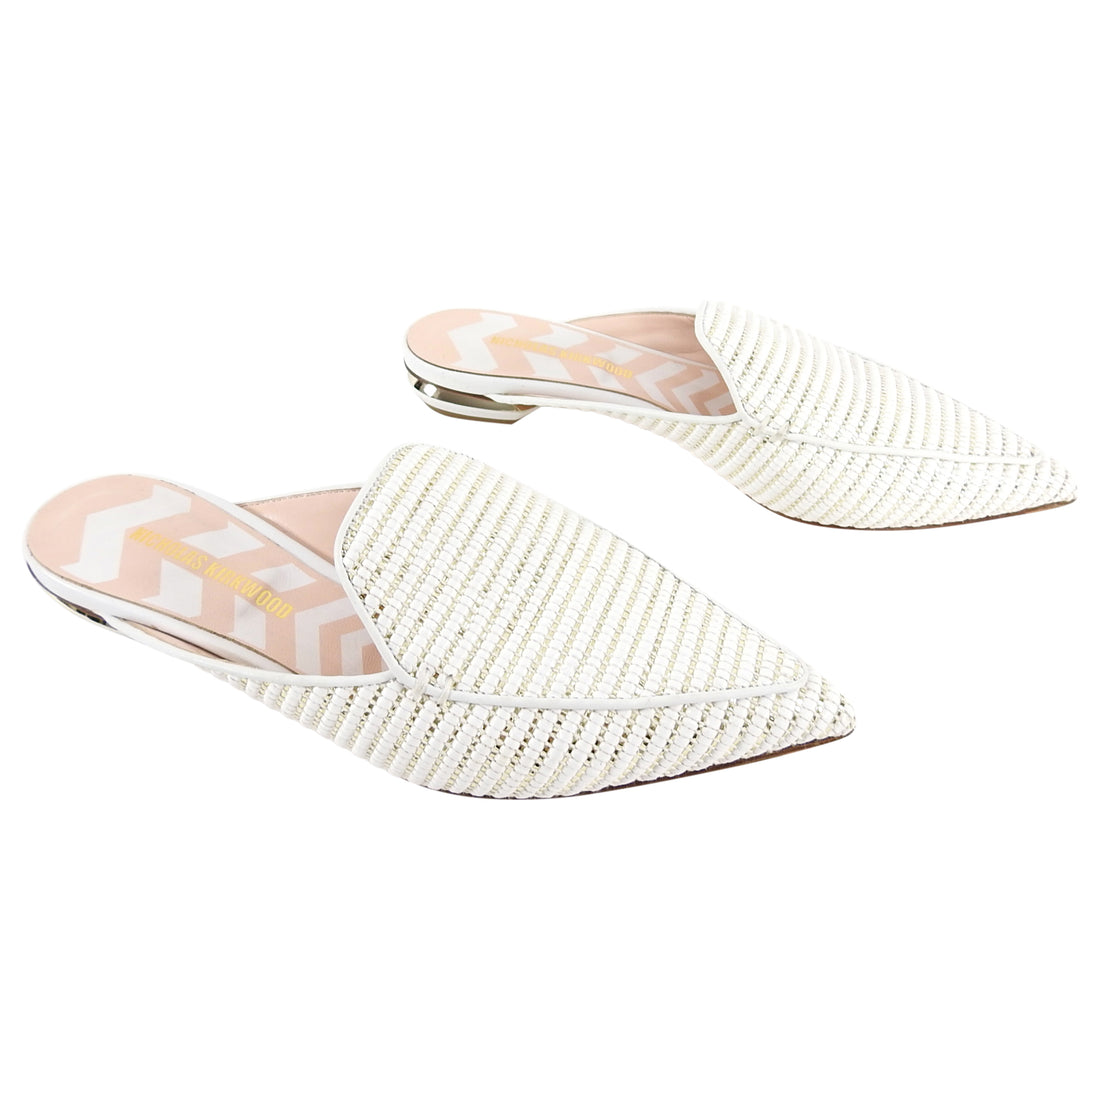 Nicholas Kirkwood White and Gold Pointed Beya Mule Slippers - 38.5 / 8